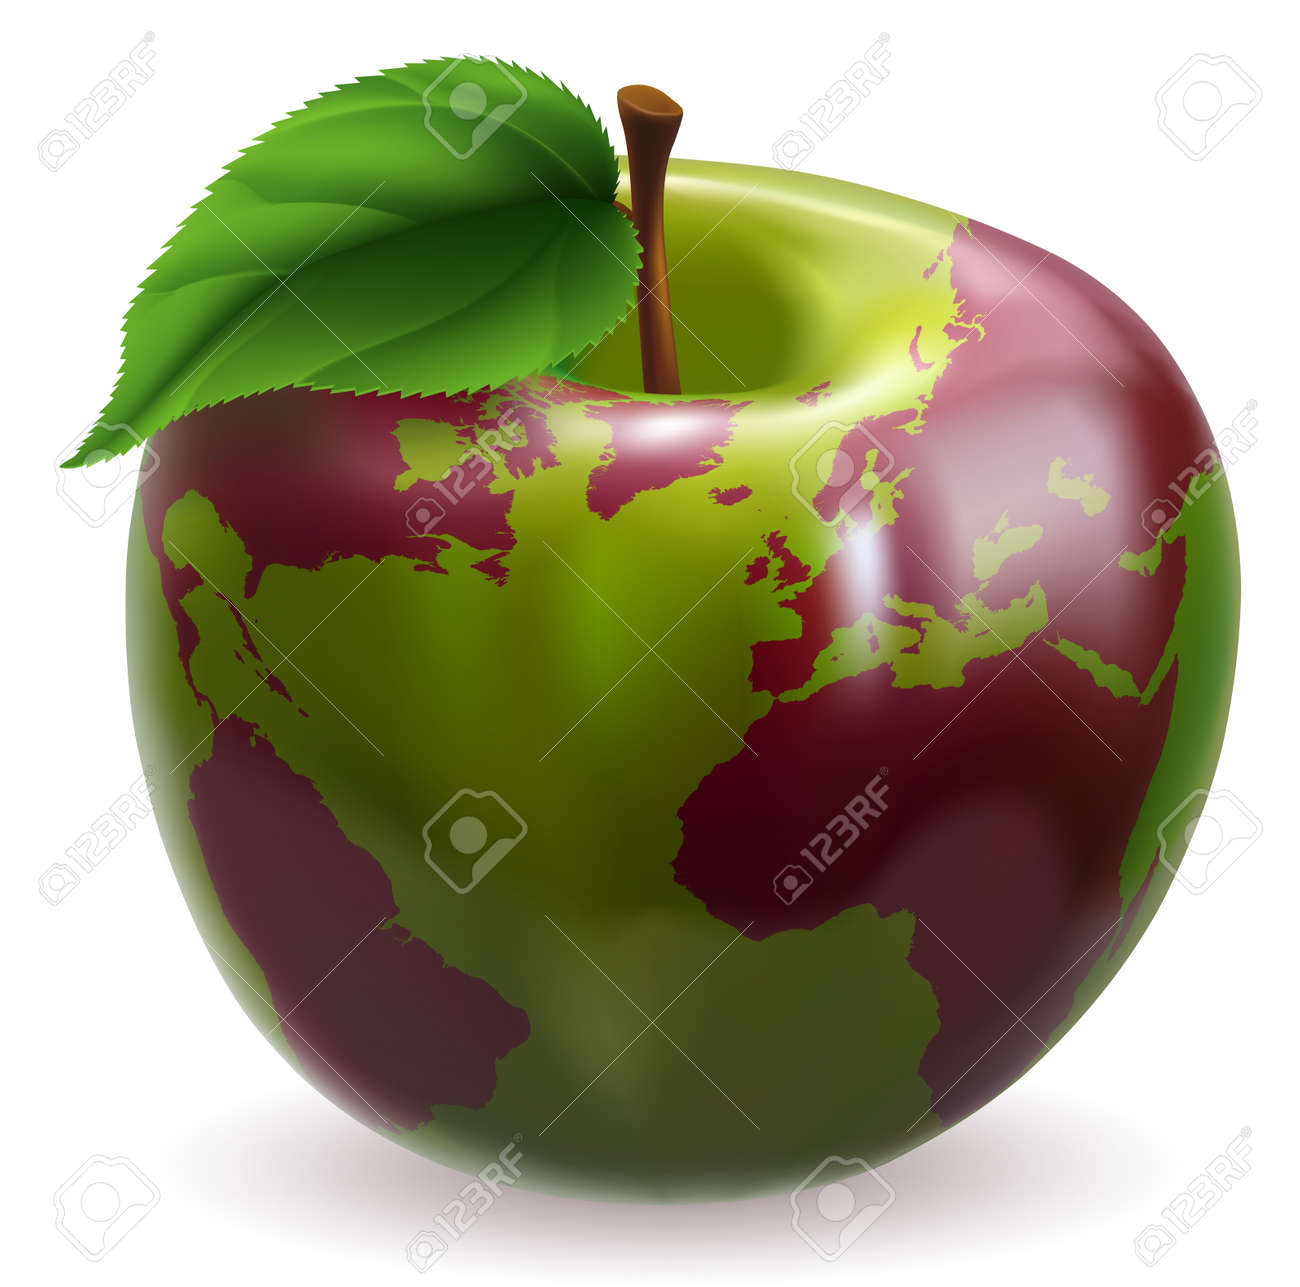 Conceptual illustration of an apple with color on skin forming the world globe Stock Vector - 11912836